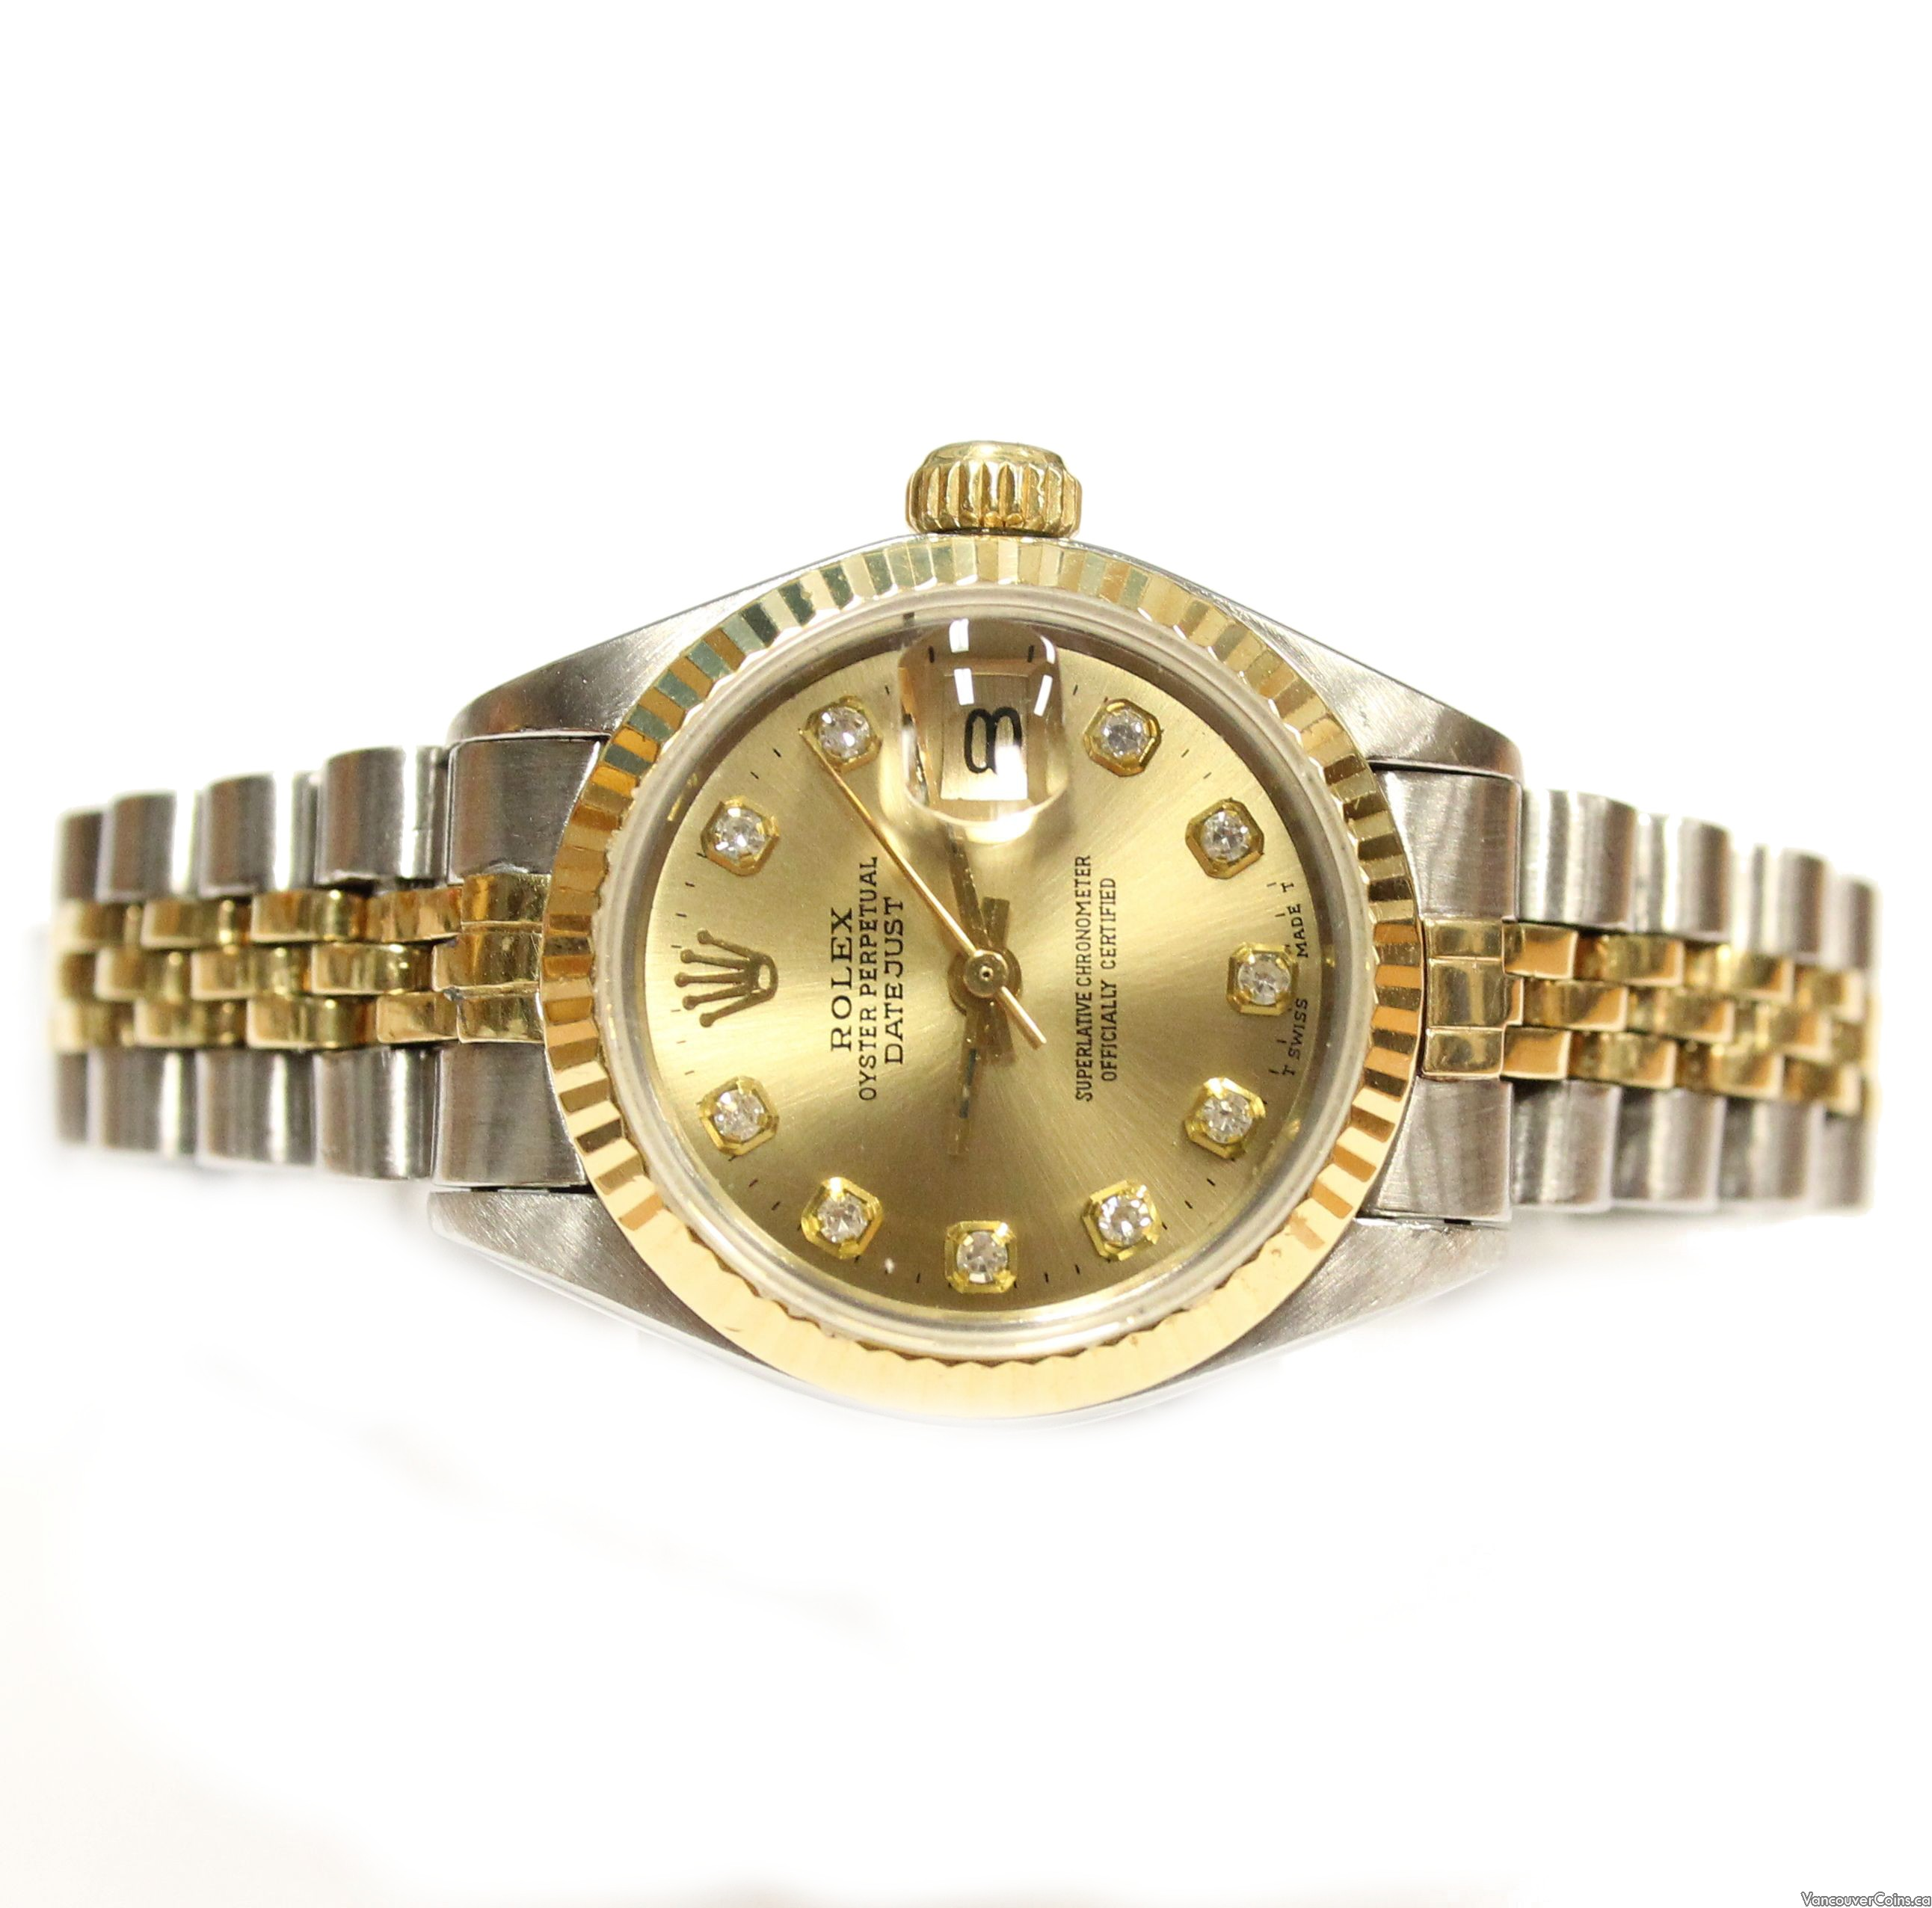 Lady Rolex Datejust 6917 Oyster Perpetual 14K gold SS diamond champagne dial